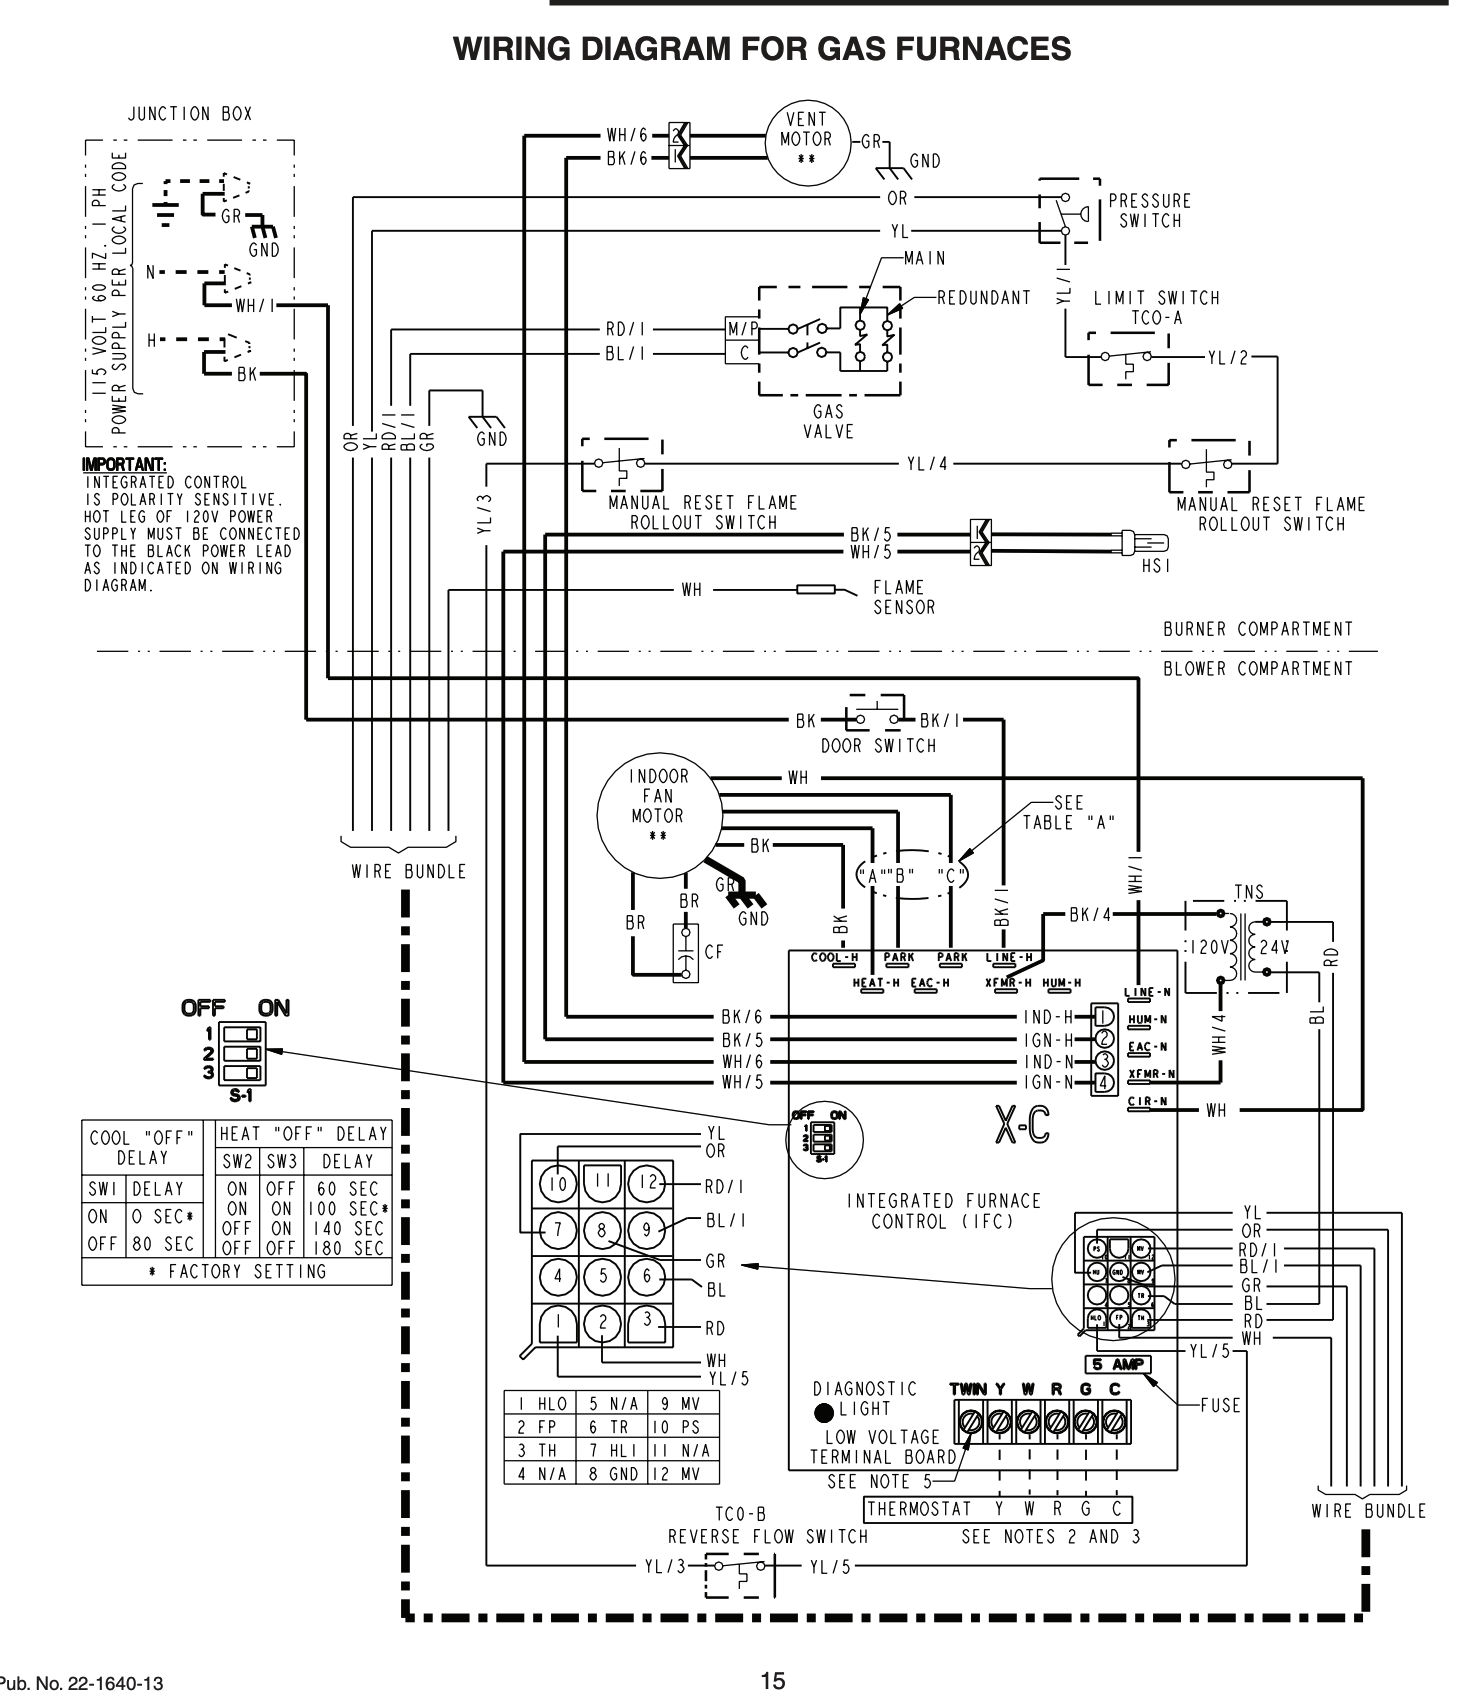 ac heater wiring diagram for honeywell